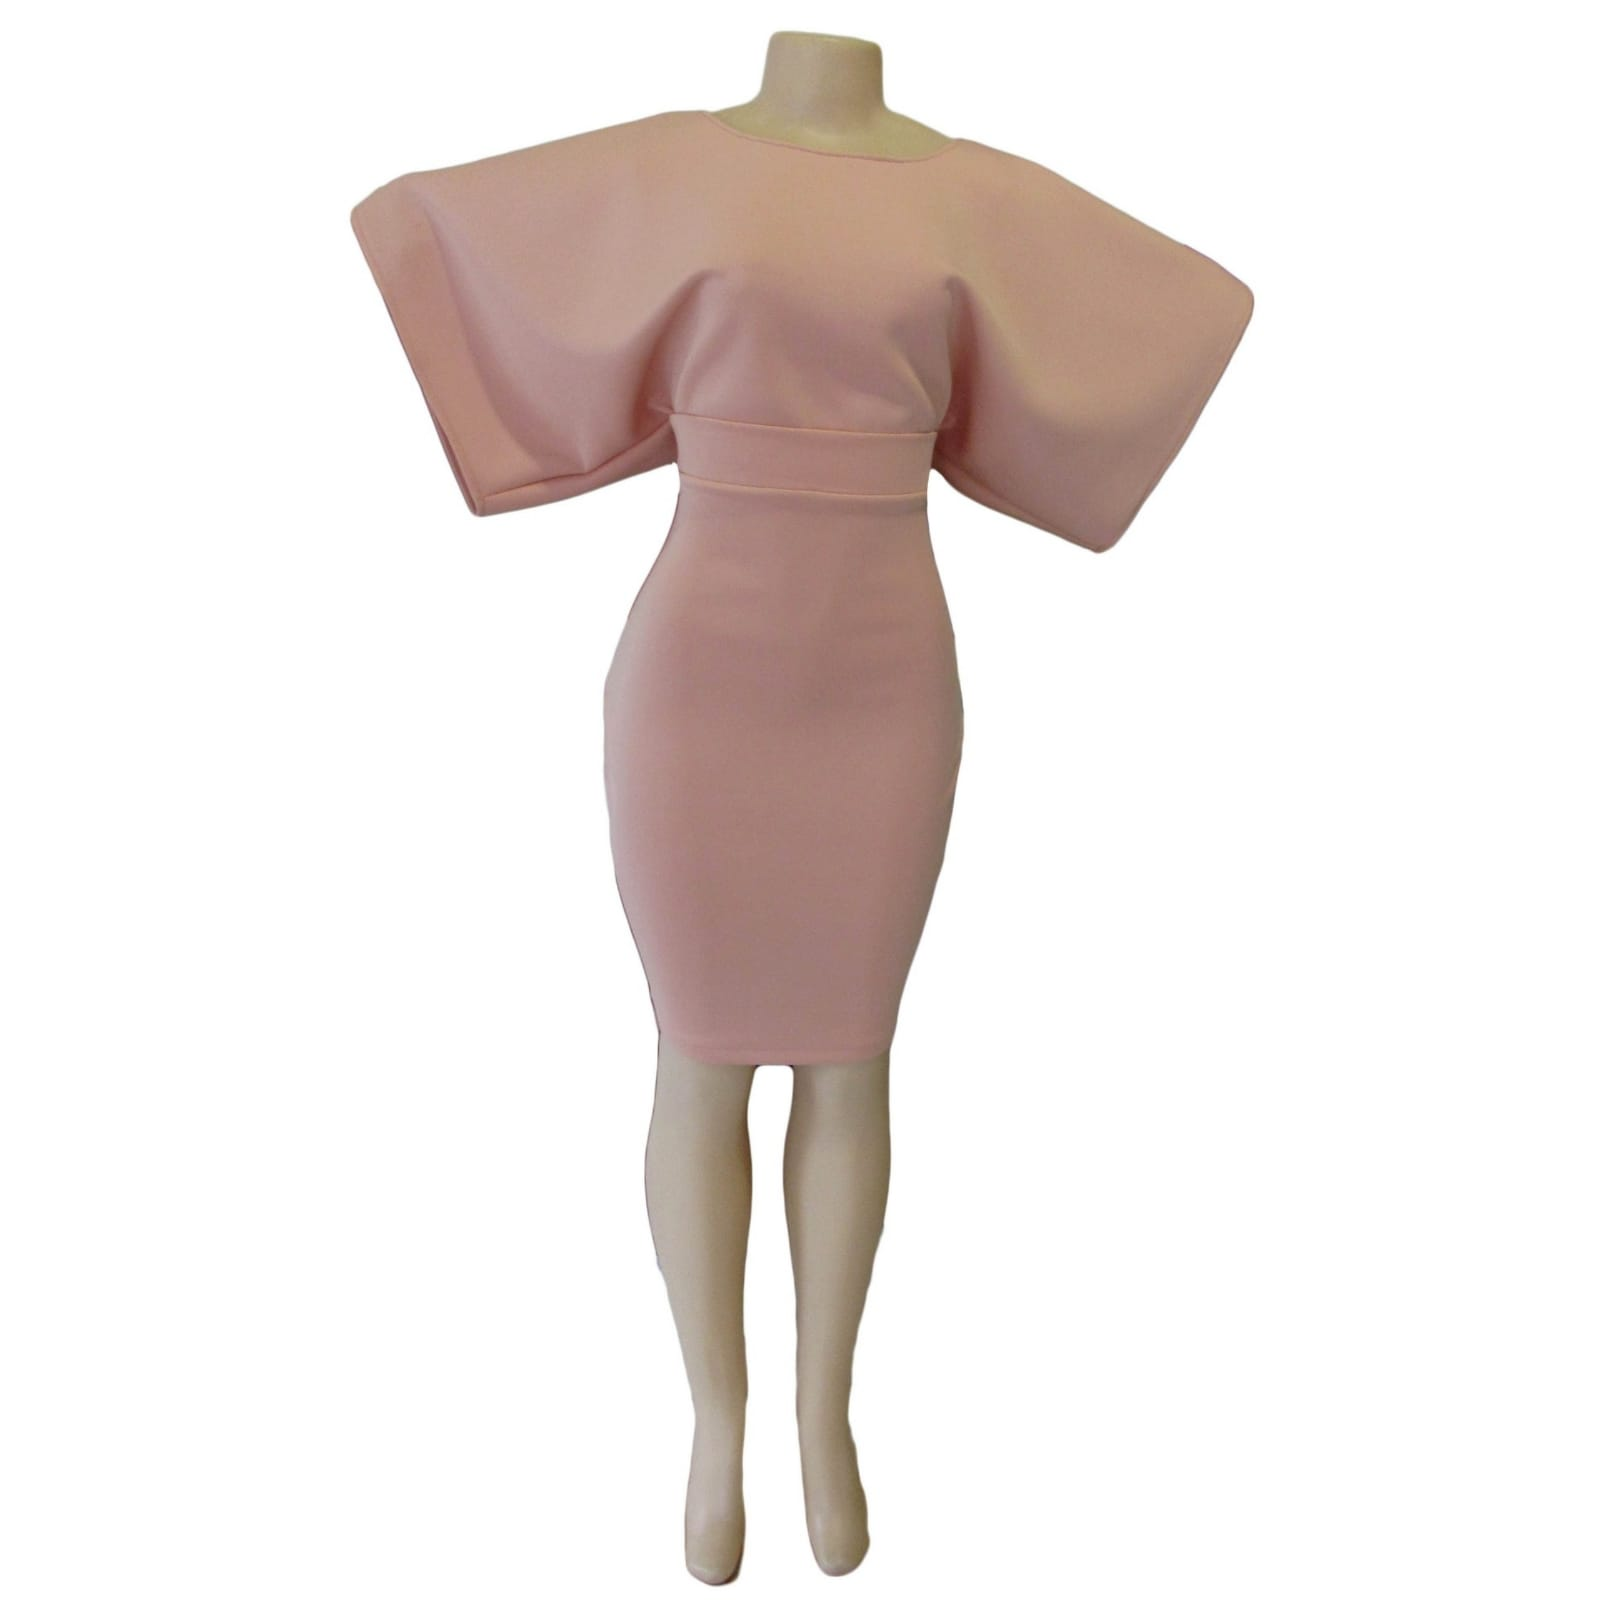 Dusty pink smart casual knee length dress 3 dusty pink smart casual knee length dress with wide short sleeves and fitted hip area creating a mini skirt look. With a belt